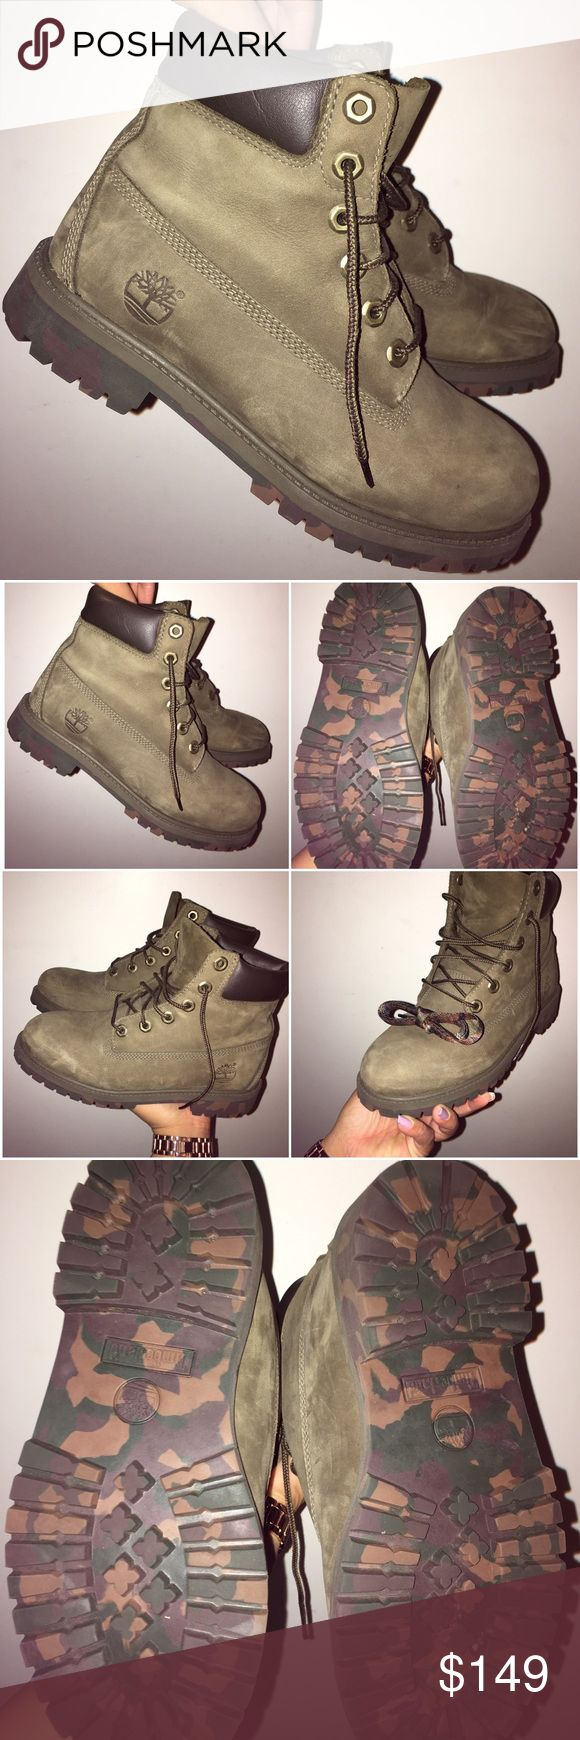 Limited Edition Rare Olive Green Timberlands This is a rare pair of camo/ olive green Timberlands MINT CONDITION. Price is firm due to rarity of item. Bottoms have almost no wear, no flaws on the shoe and comes with the extra set of camo laces! Comment below for any additional questions you may have. RUN VERY TRUE TO SIZE. KIDS 5/ WOMENS 7  Timberland Shoes Combat & Moto Boots